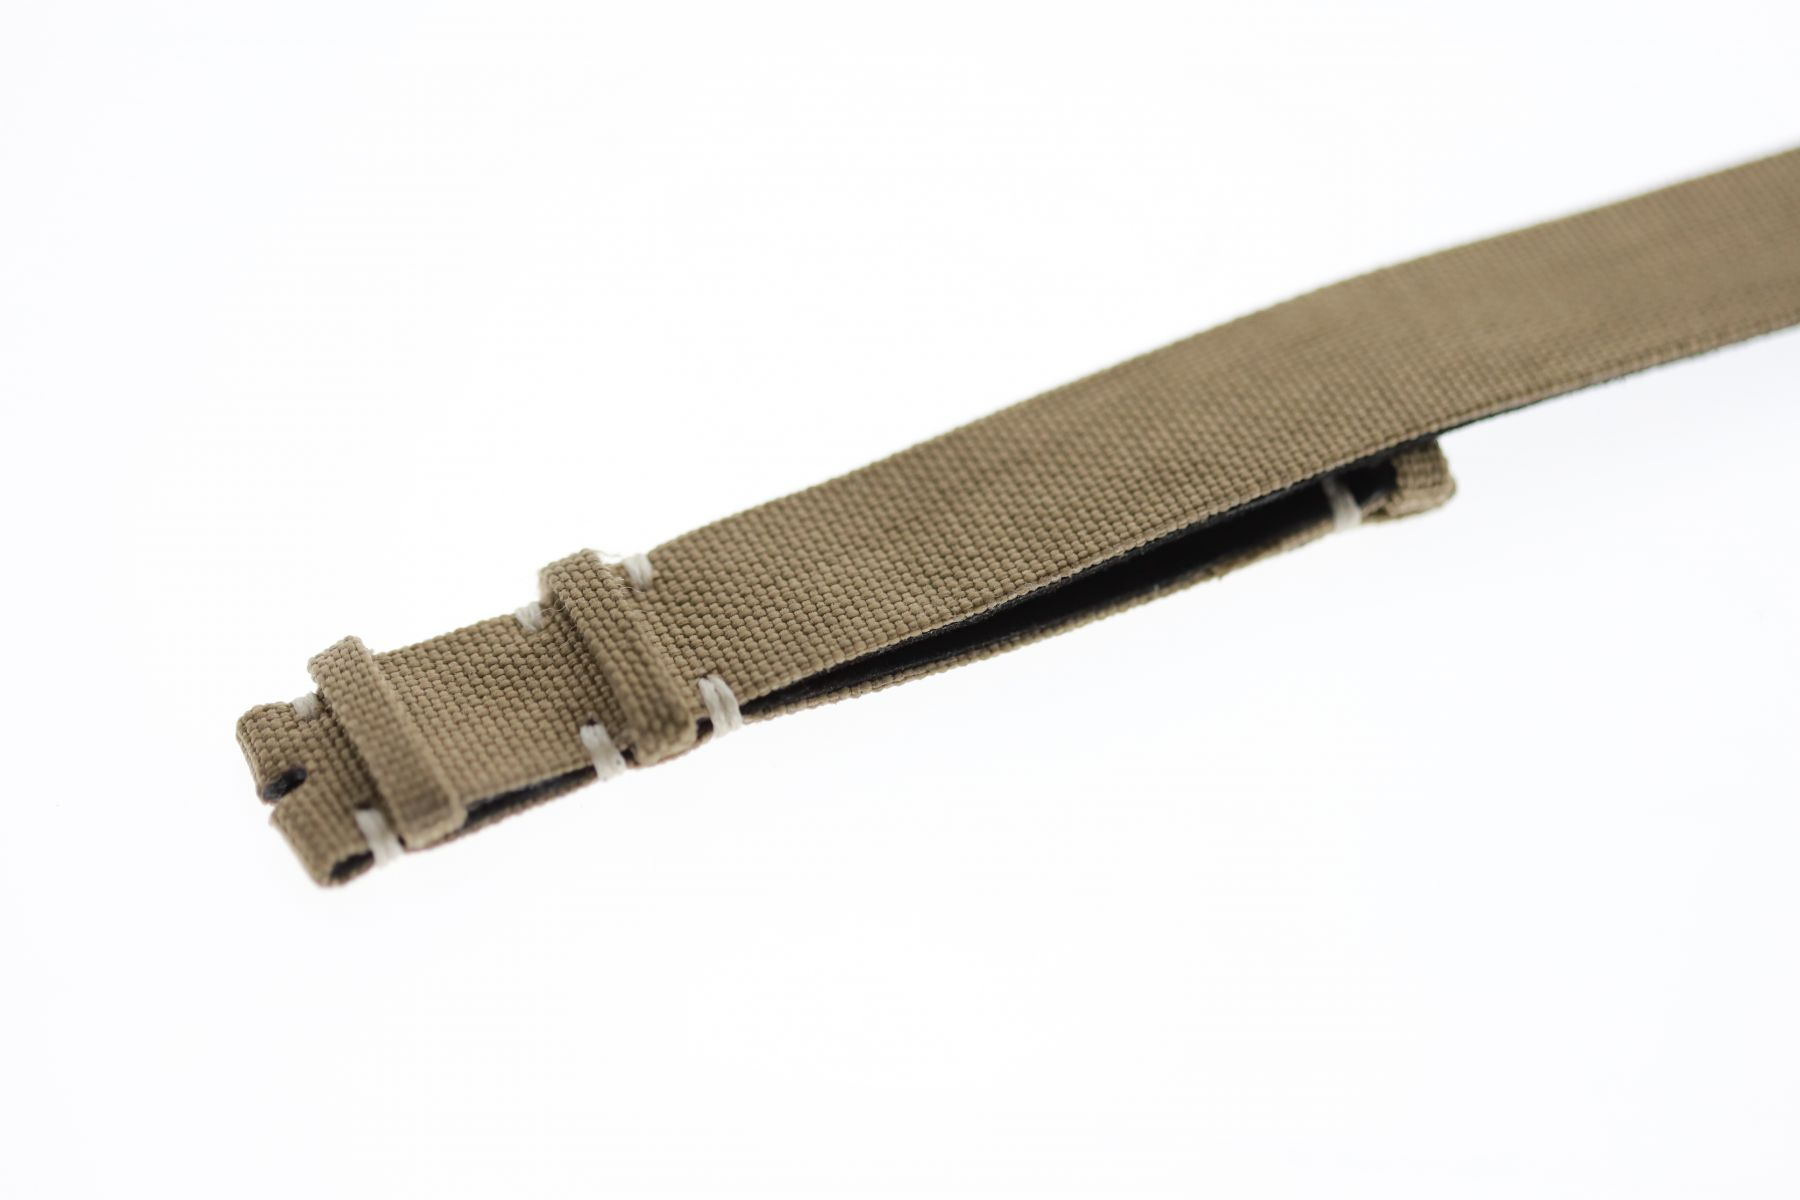 NATO custom wrist watch band 20mm in Green Khaki Cordura / Regular size / Vegan style